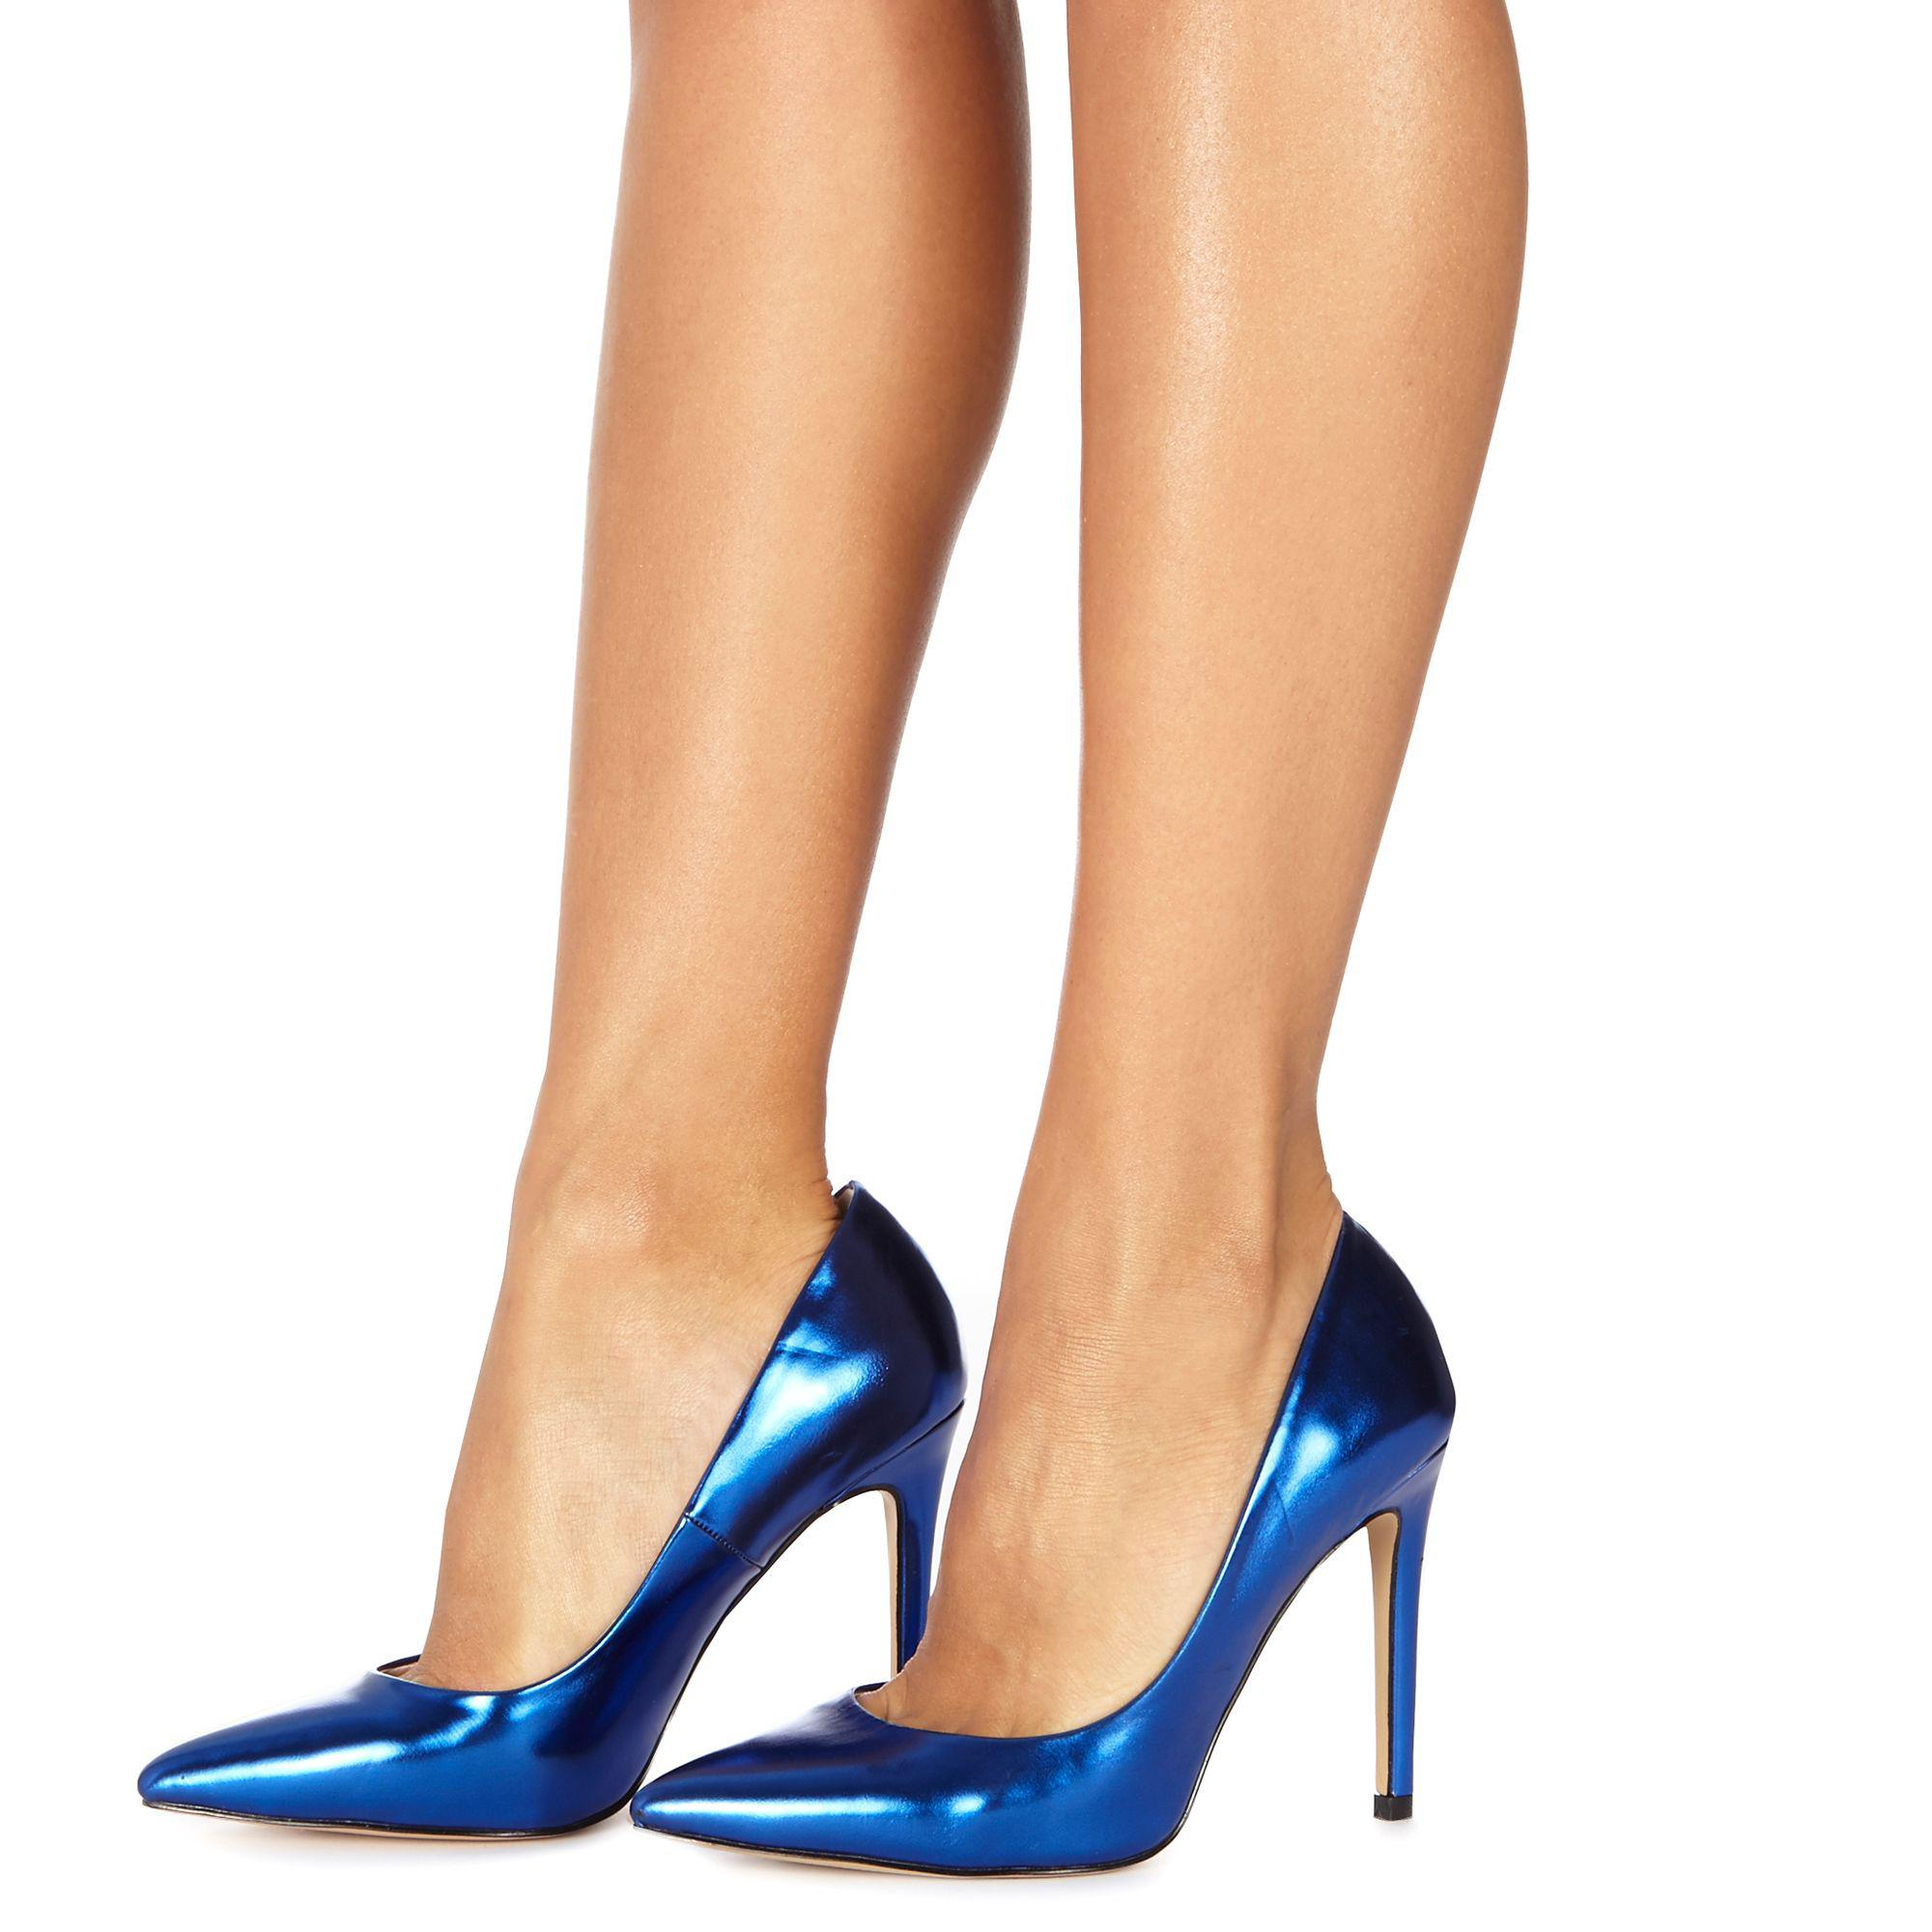 4784fcf7eace1 Faith Blue 'chloe' High Heel Wide Fit Pointed Shoes in Blue - Lyst